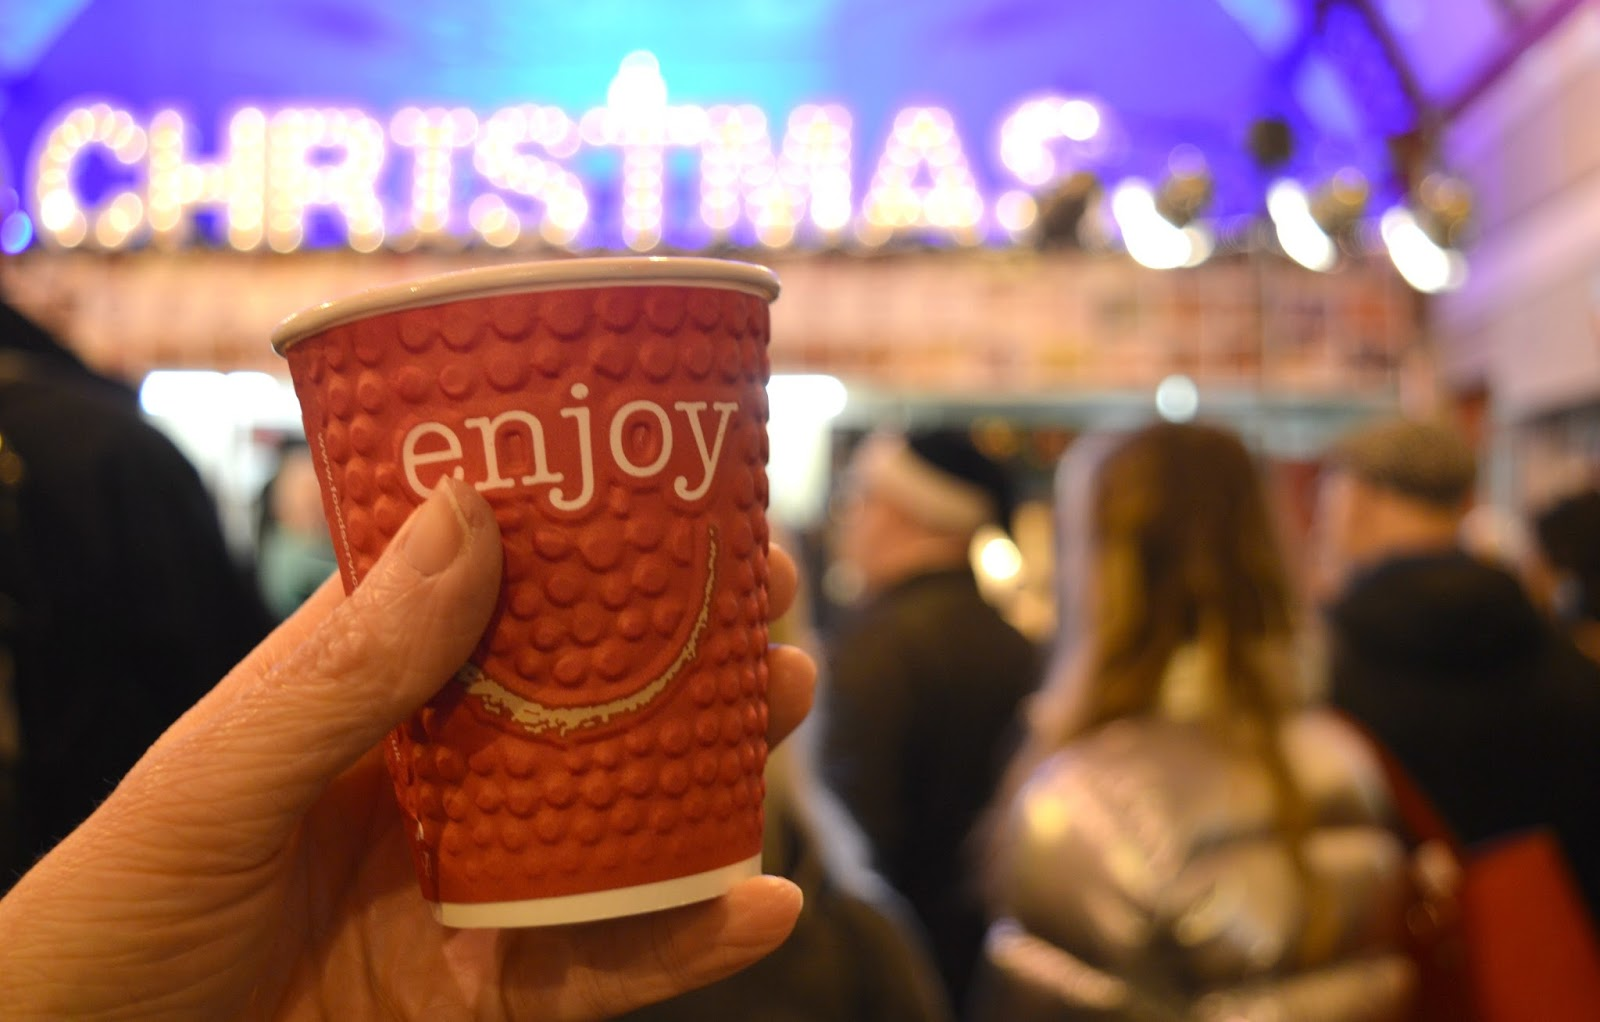 The Newcastle Christmas Night Market at Grainger Market